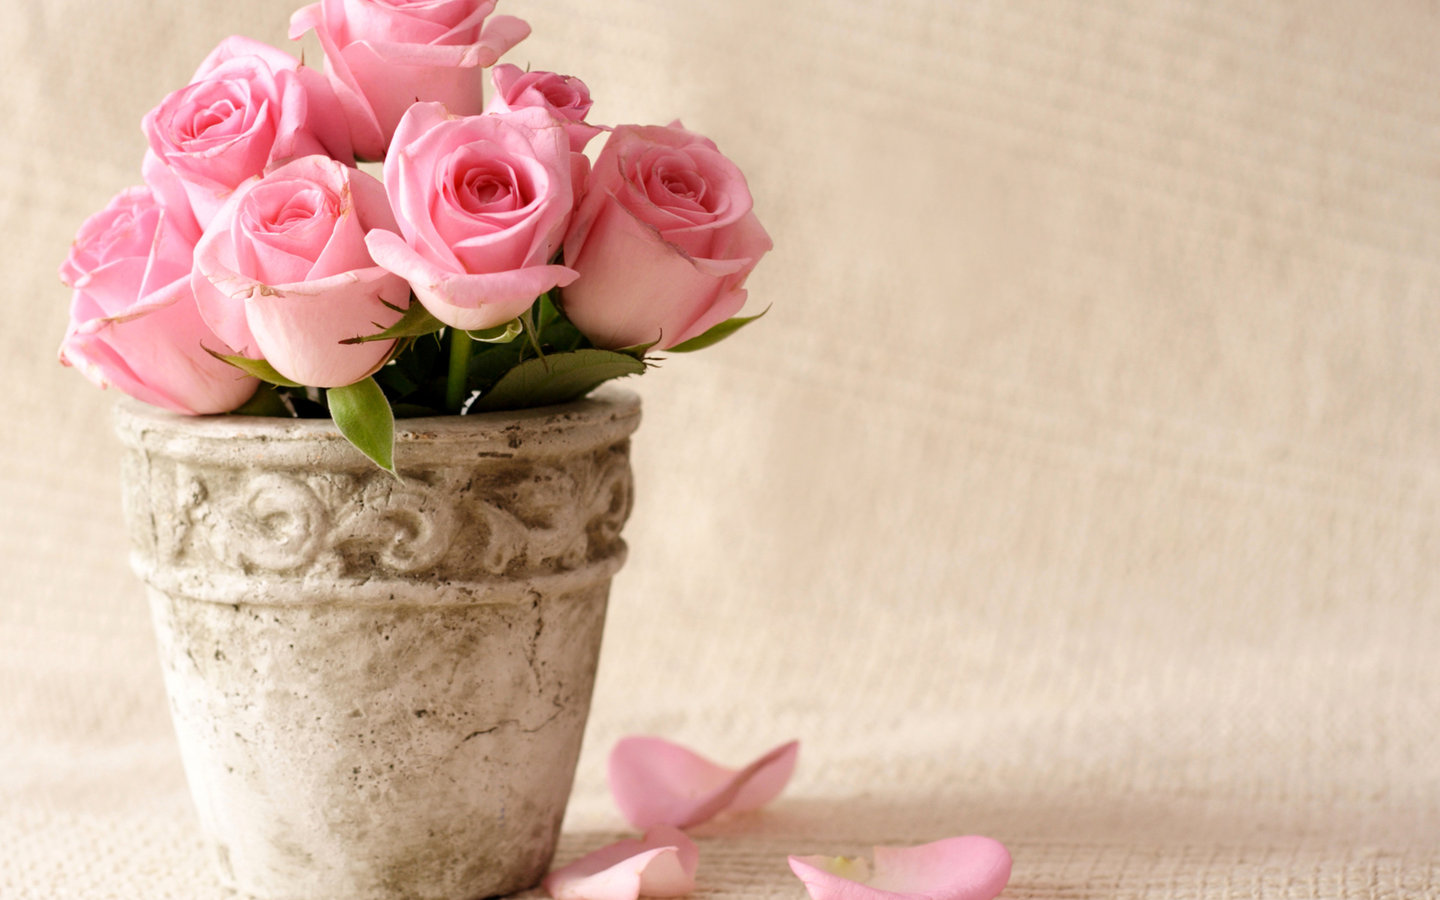 Beautiful hd flower wallpaper wallpapersafari download flower pink petals desktop backgrounds 1440x900 izmirmasajfo